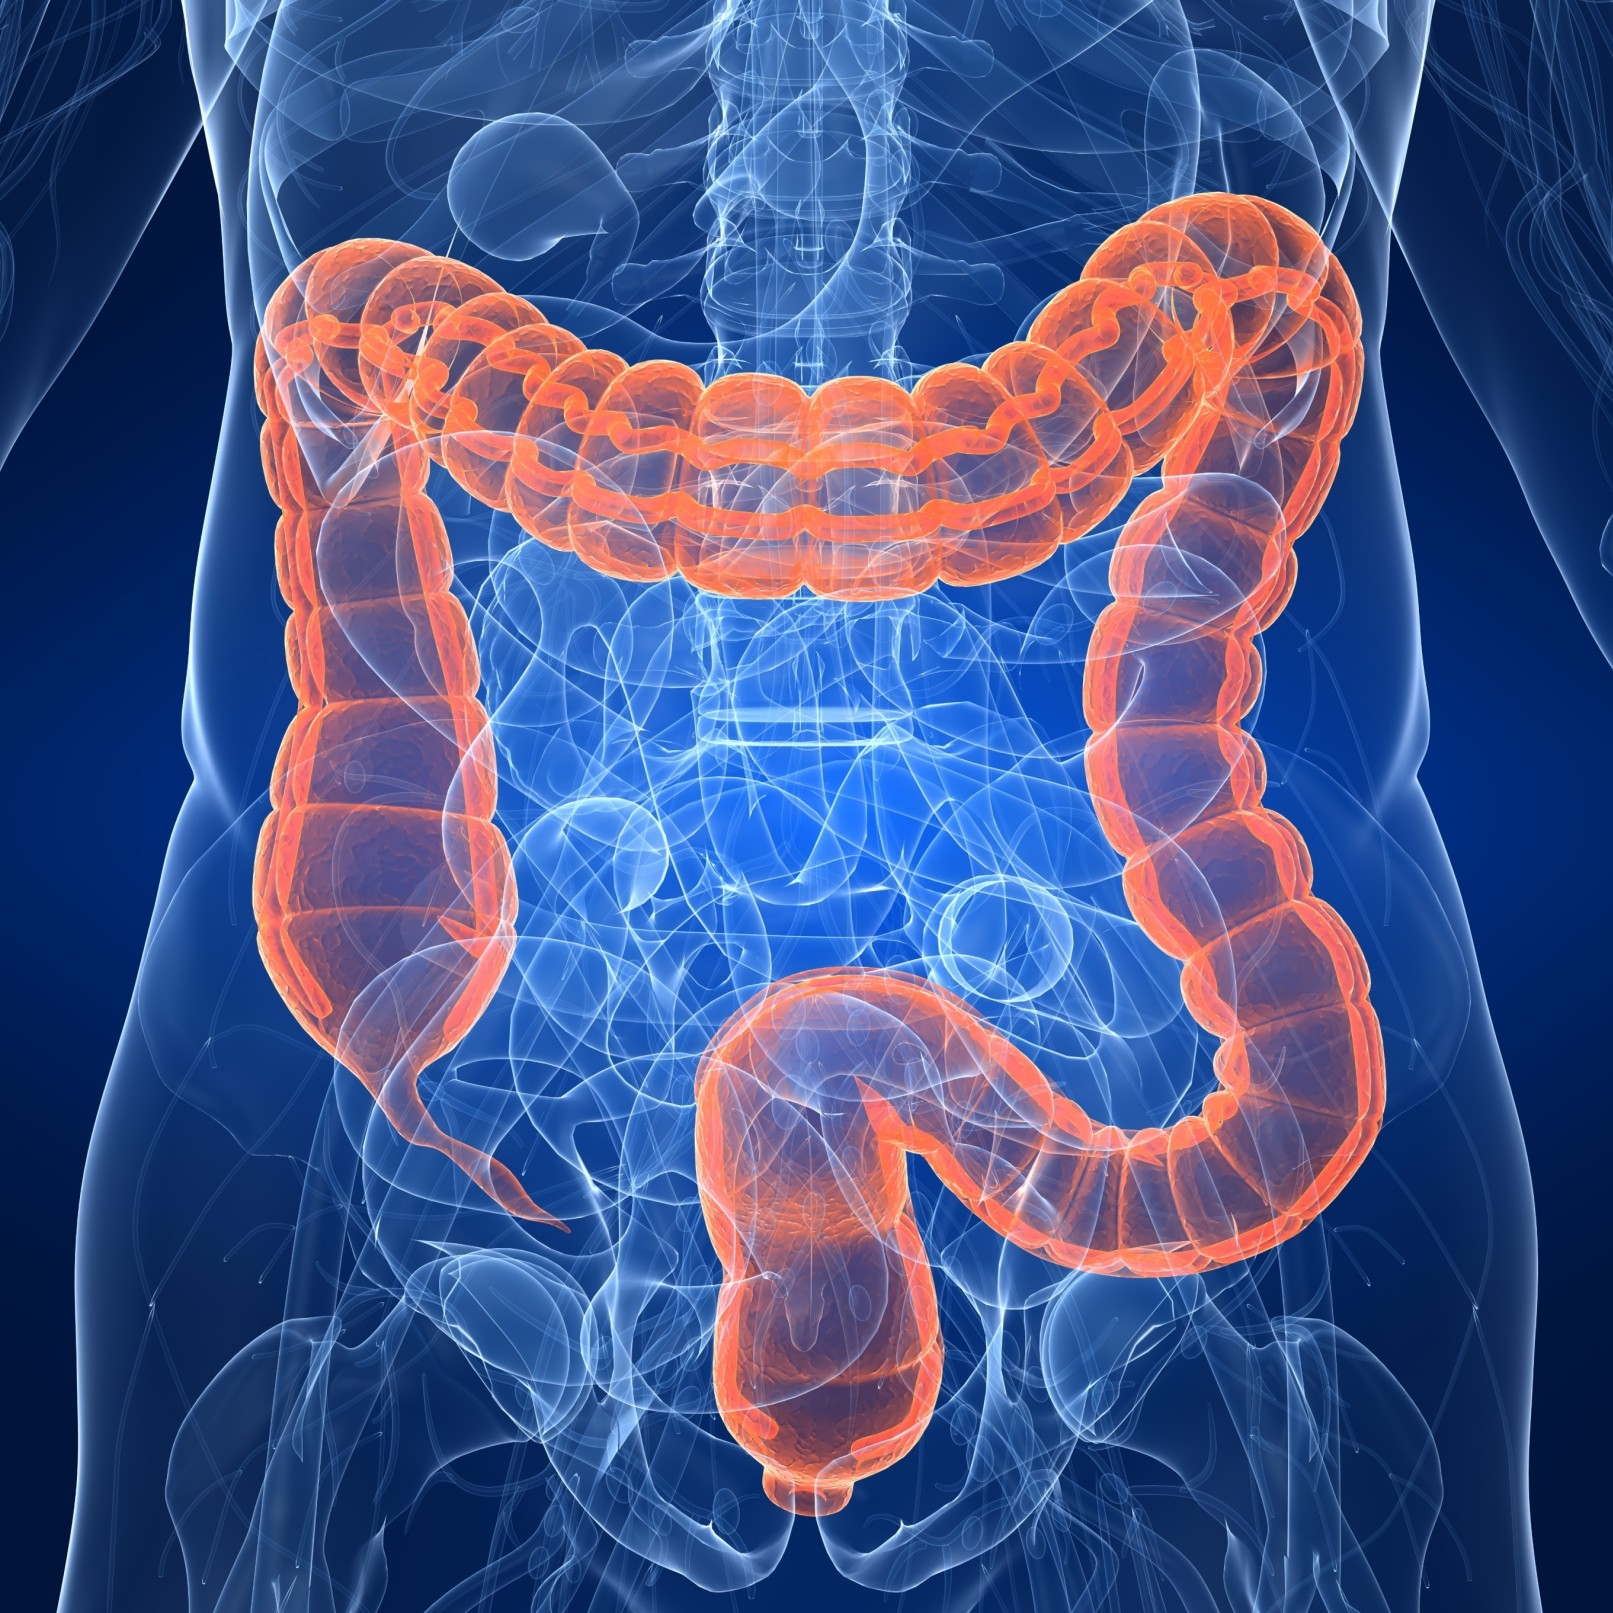 Can Glucosamine and Chondroitin Support a Healthy Colon?